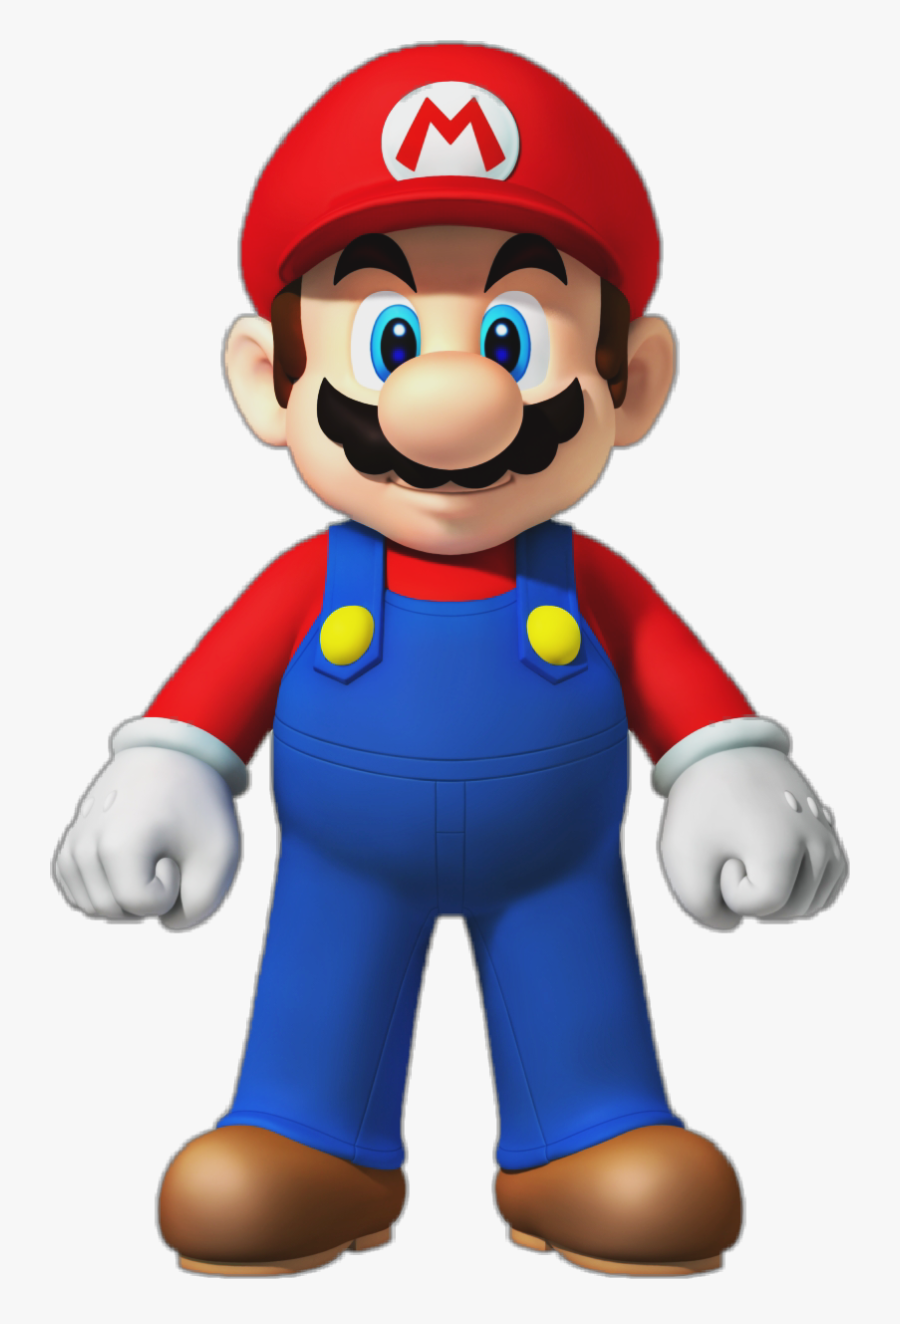 #itsamemario #mario #papermario #marioparty #mariokart - New Super Mario Bros Wii Render, Transparent Clipart